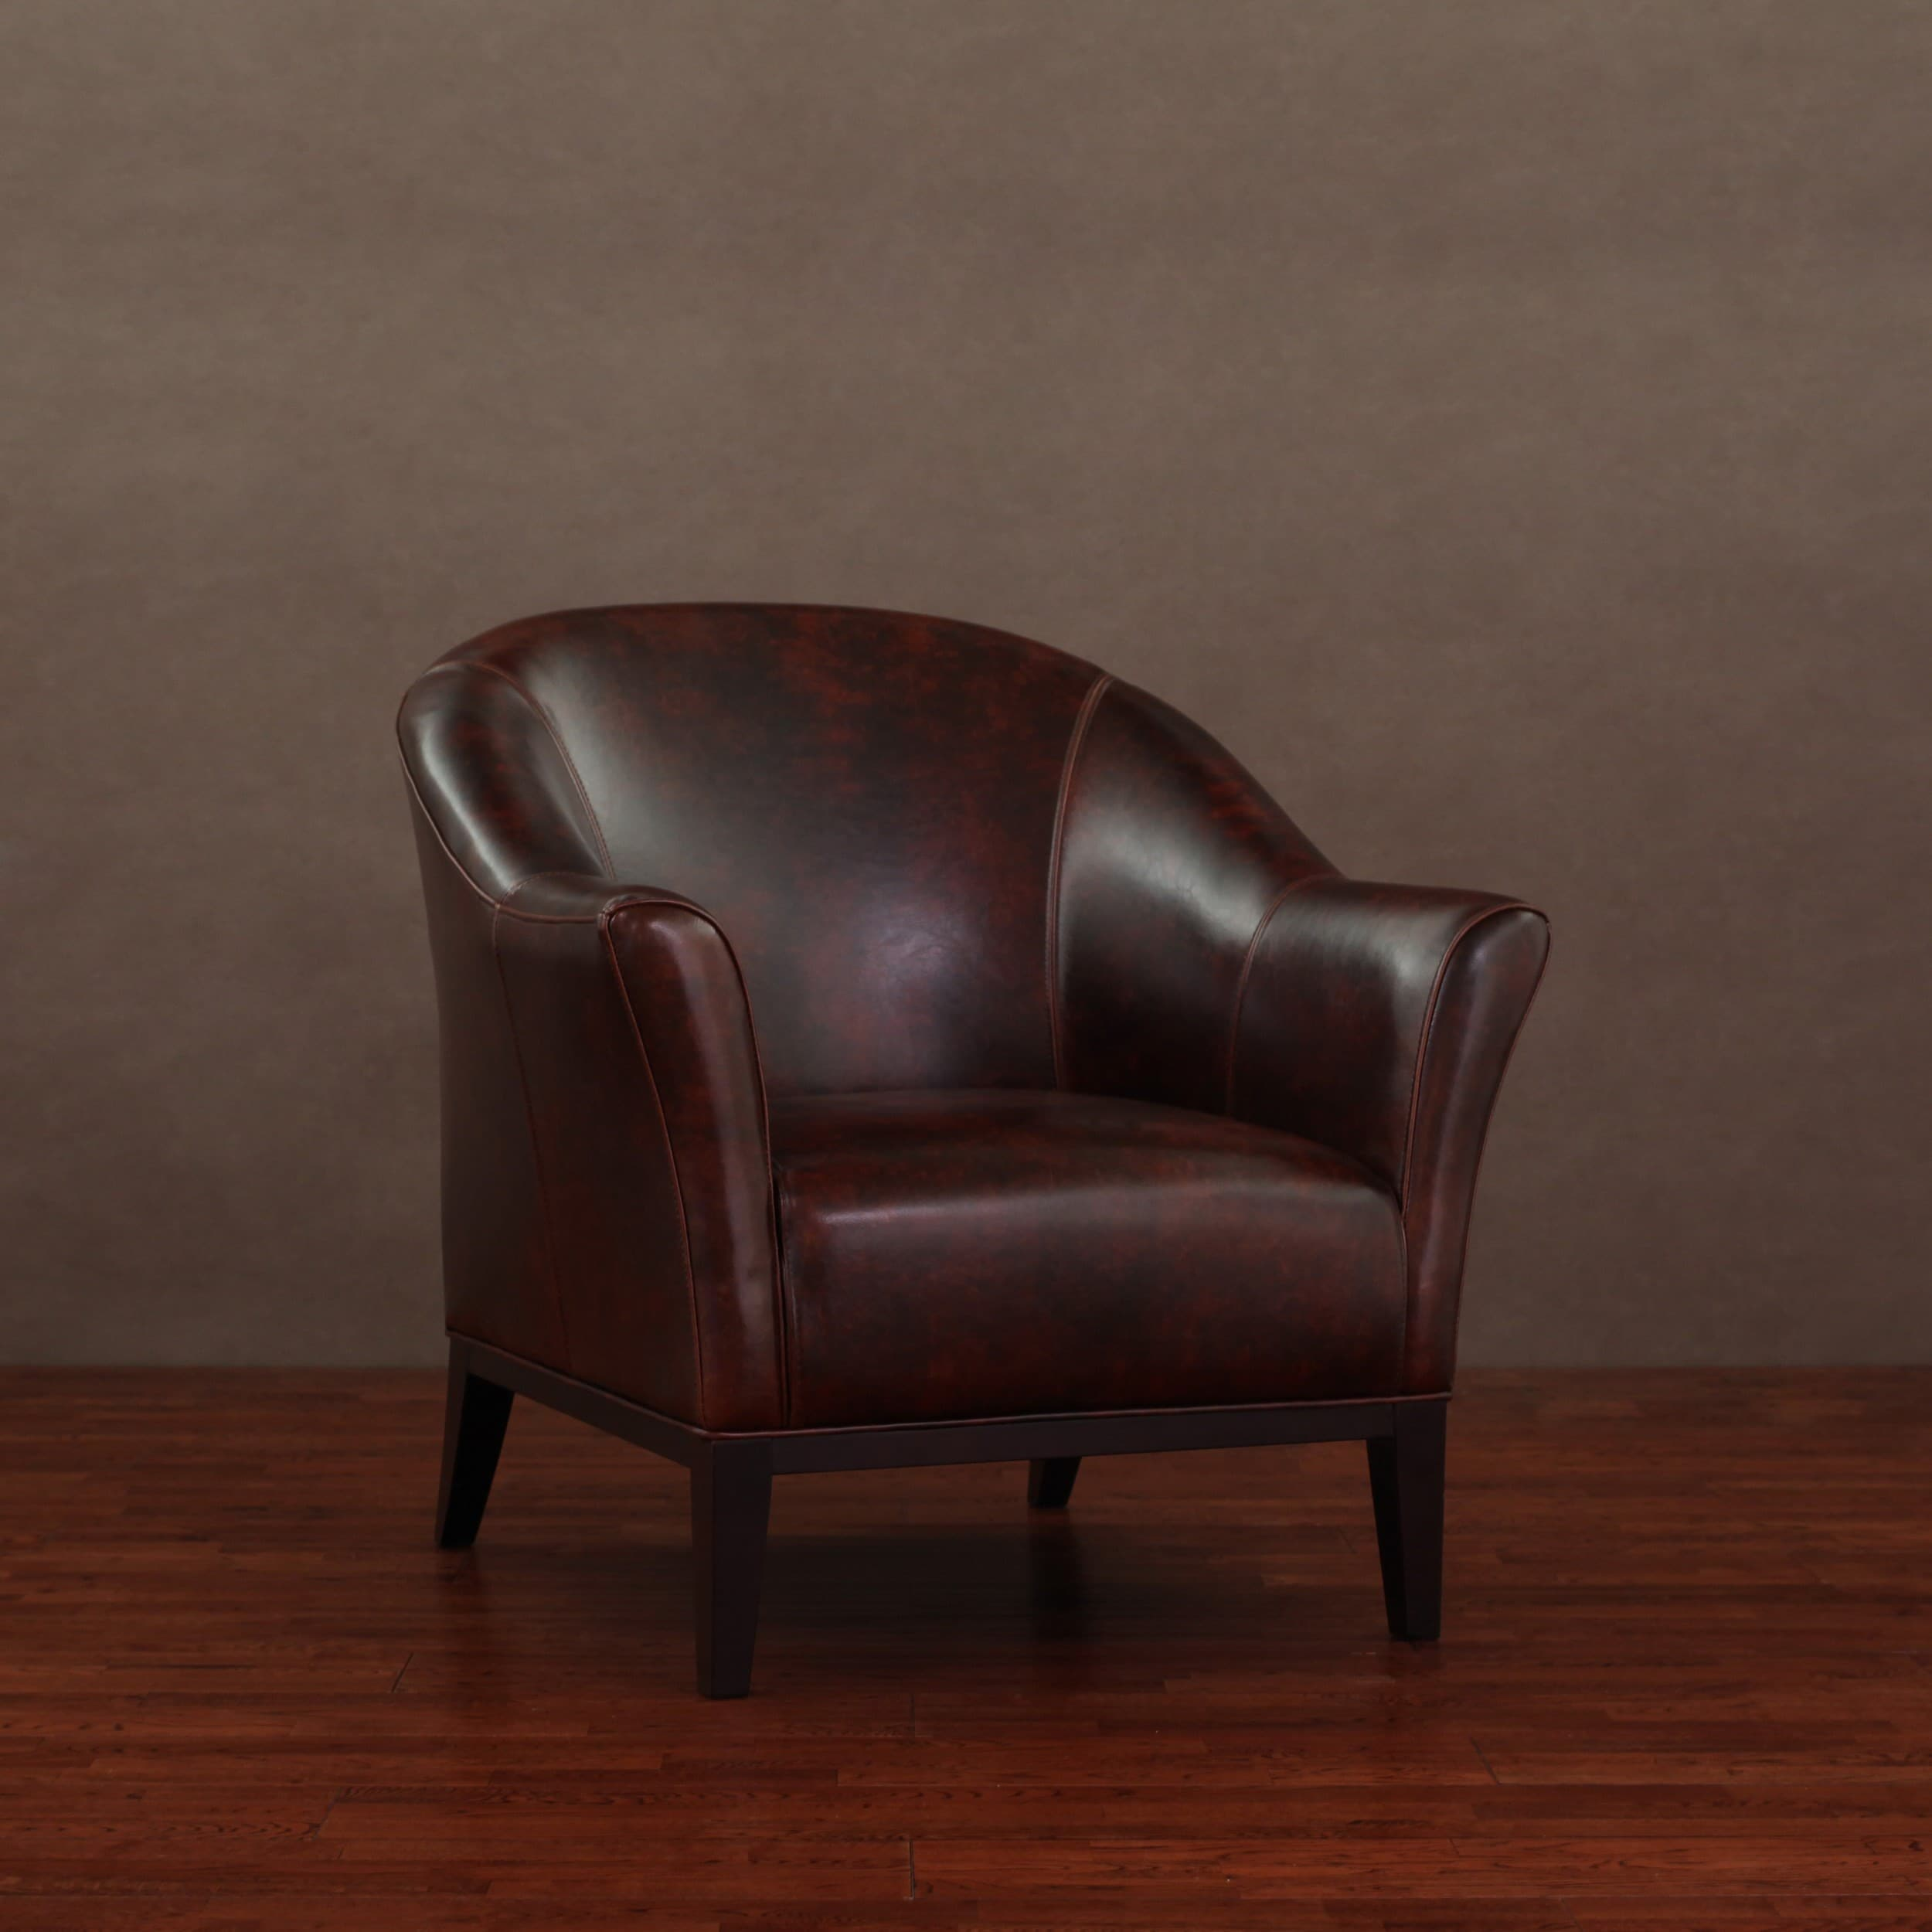 Overstock Chairs Tivoli Mahogany Leather Arm Chair Overstock Shopping